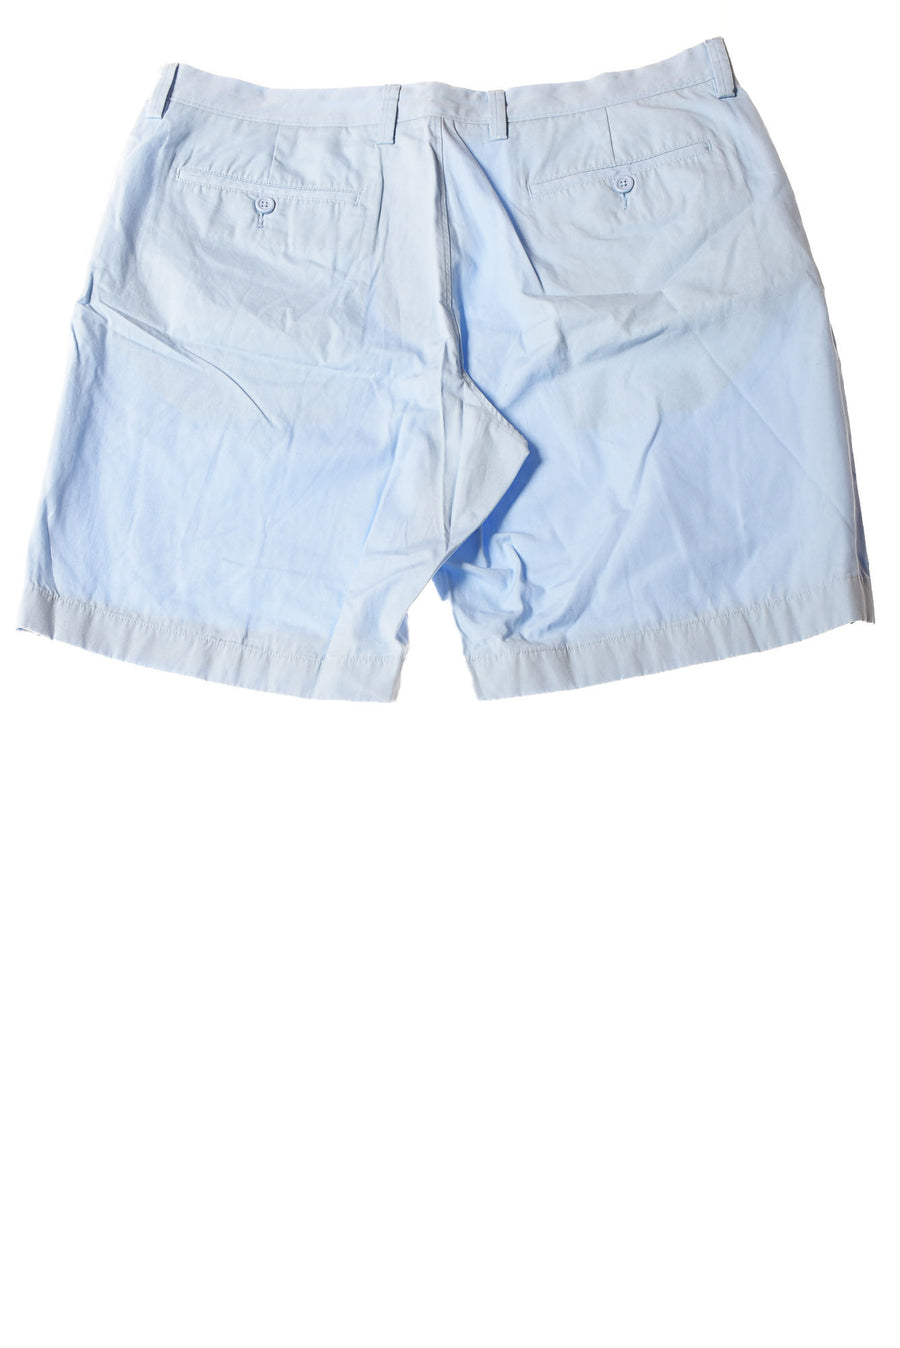 NEW J. Crew Men's Shorts 36 Blue